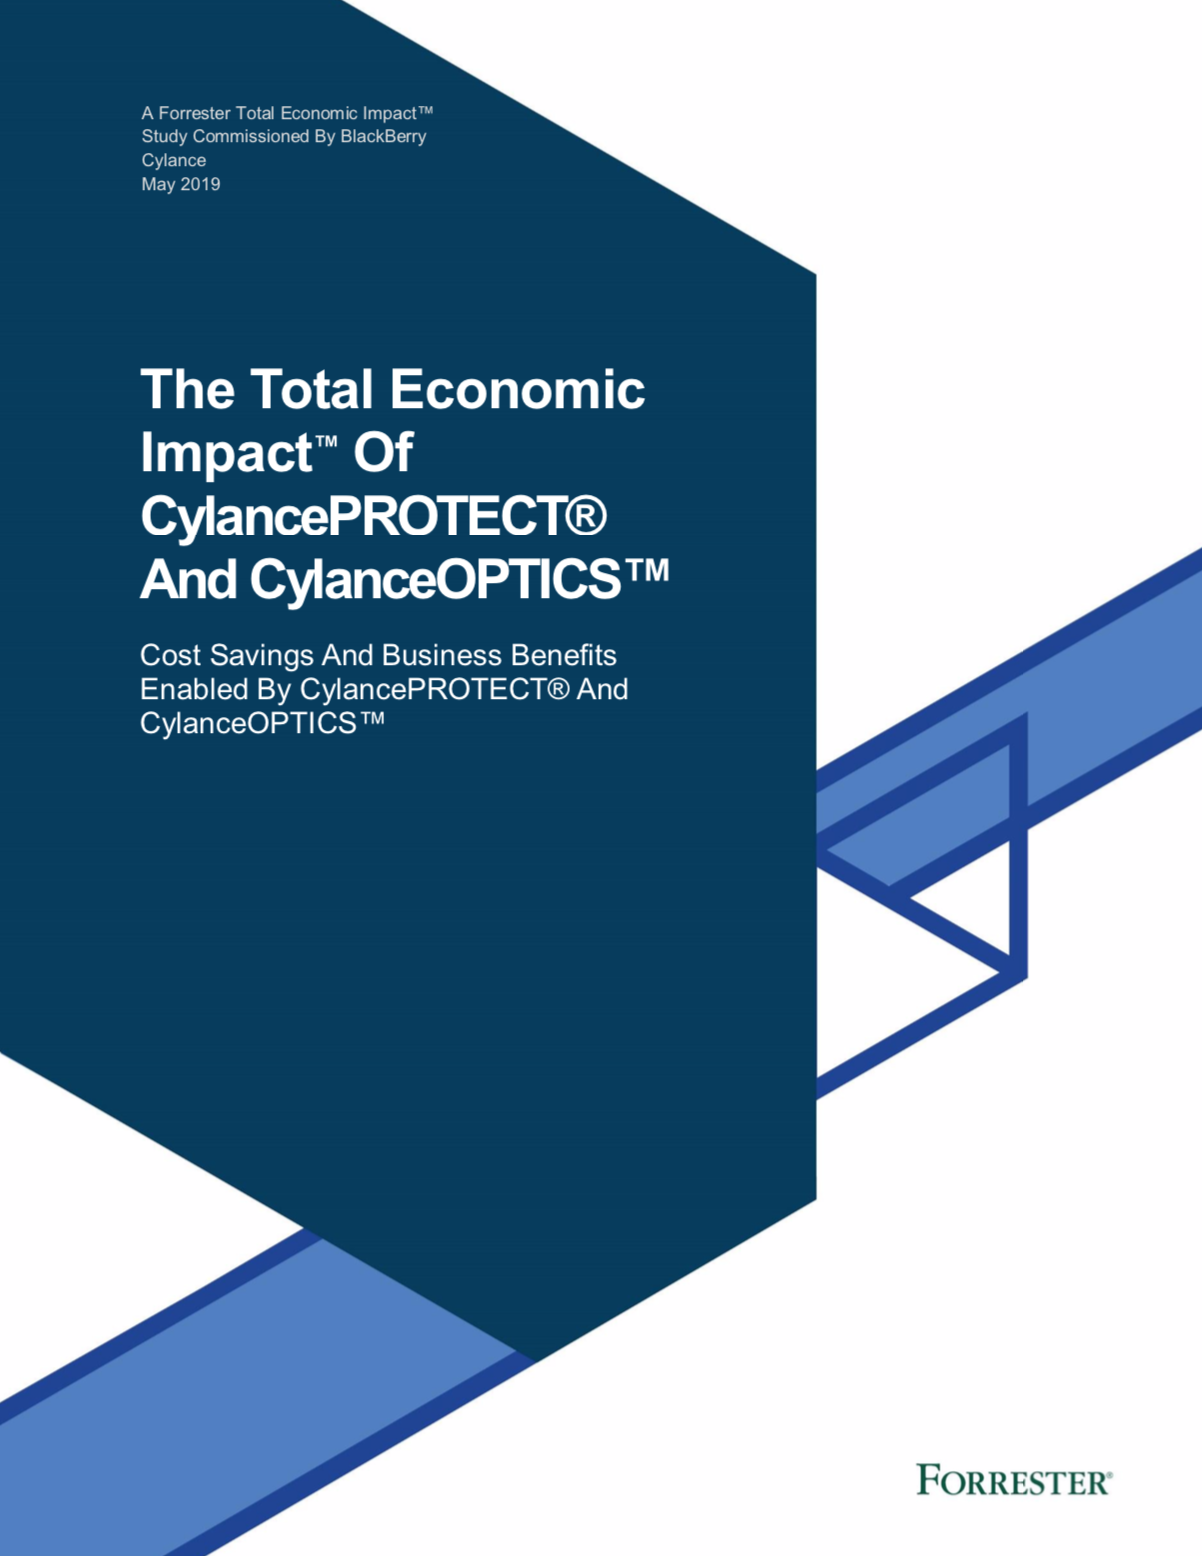 The Total Economic Impact<sup>TM</sup> Of CylancePROTECT<sup>®</sup> And CylanceOPTICS<sup>TM</sup>